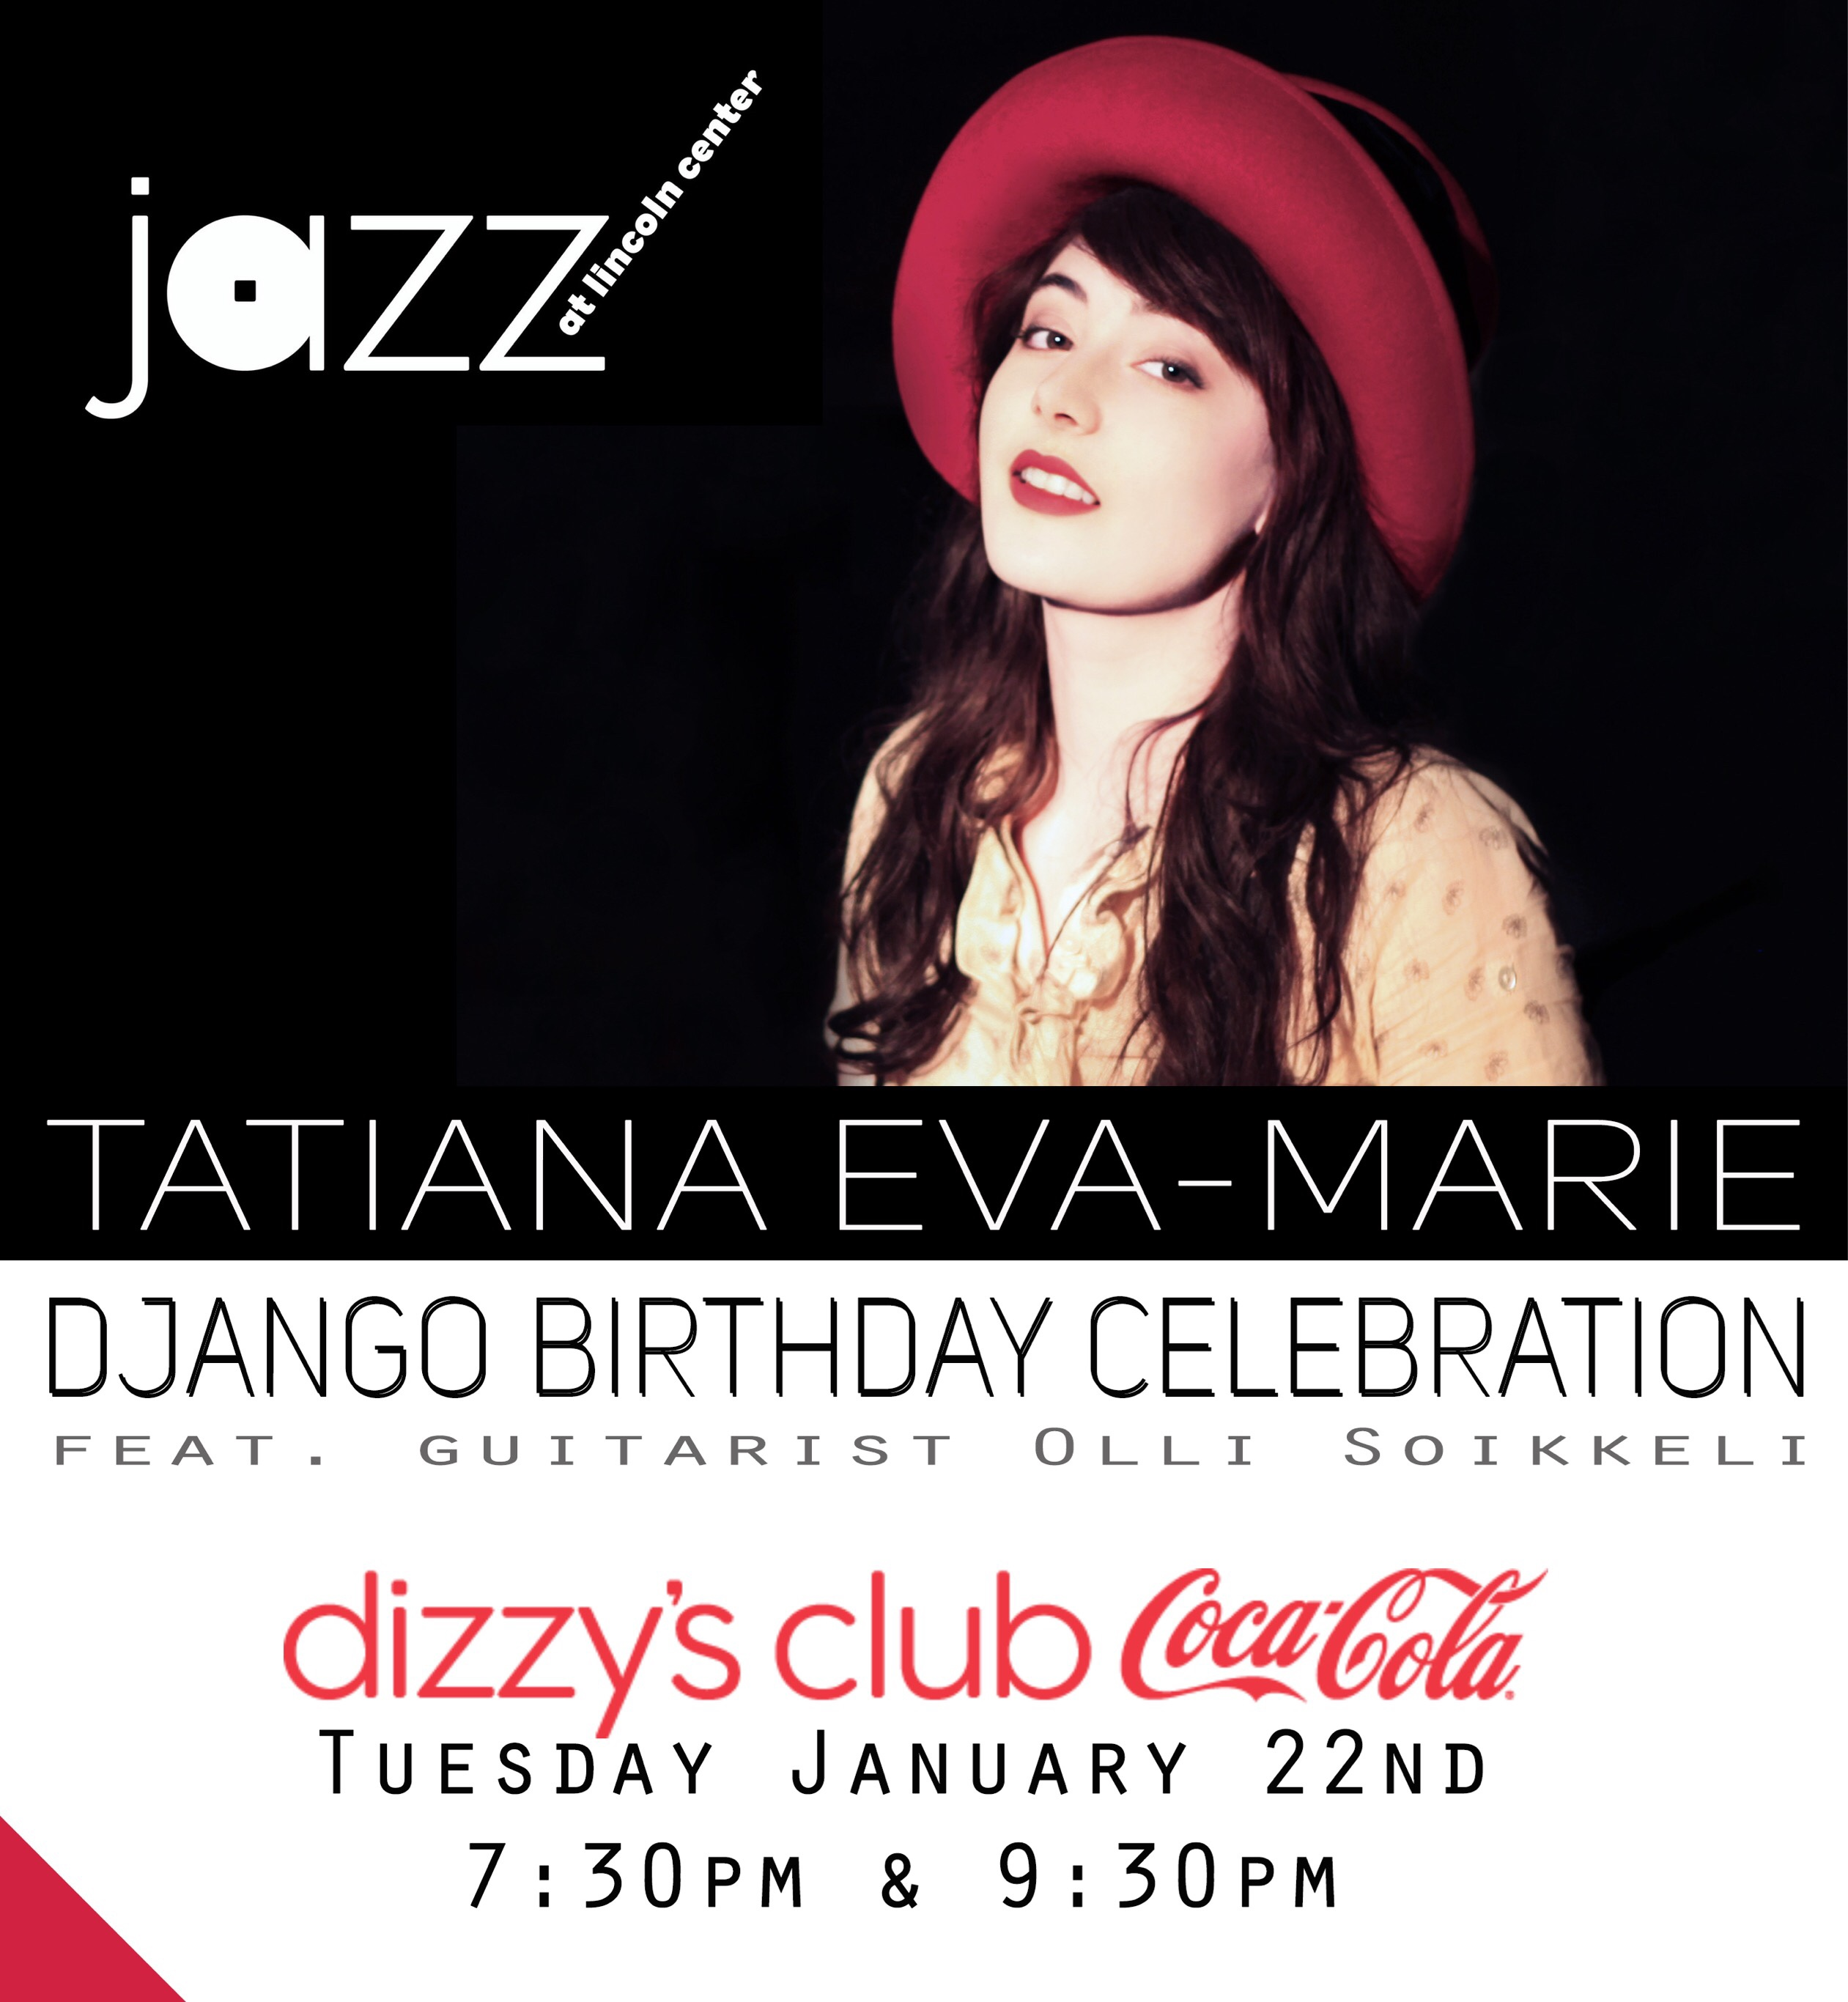 New York Jazz Artist Tatiana Eva Marie And The Avalon Jazz Band Will Be Celebrating Django Reinhardt And His Brand Of Hot Jazz On Tuesday January Nd At